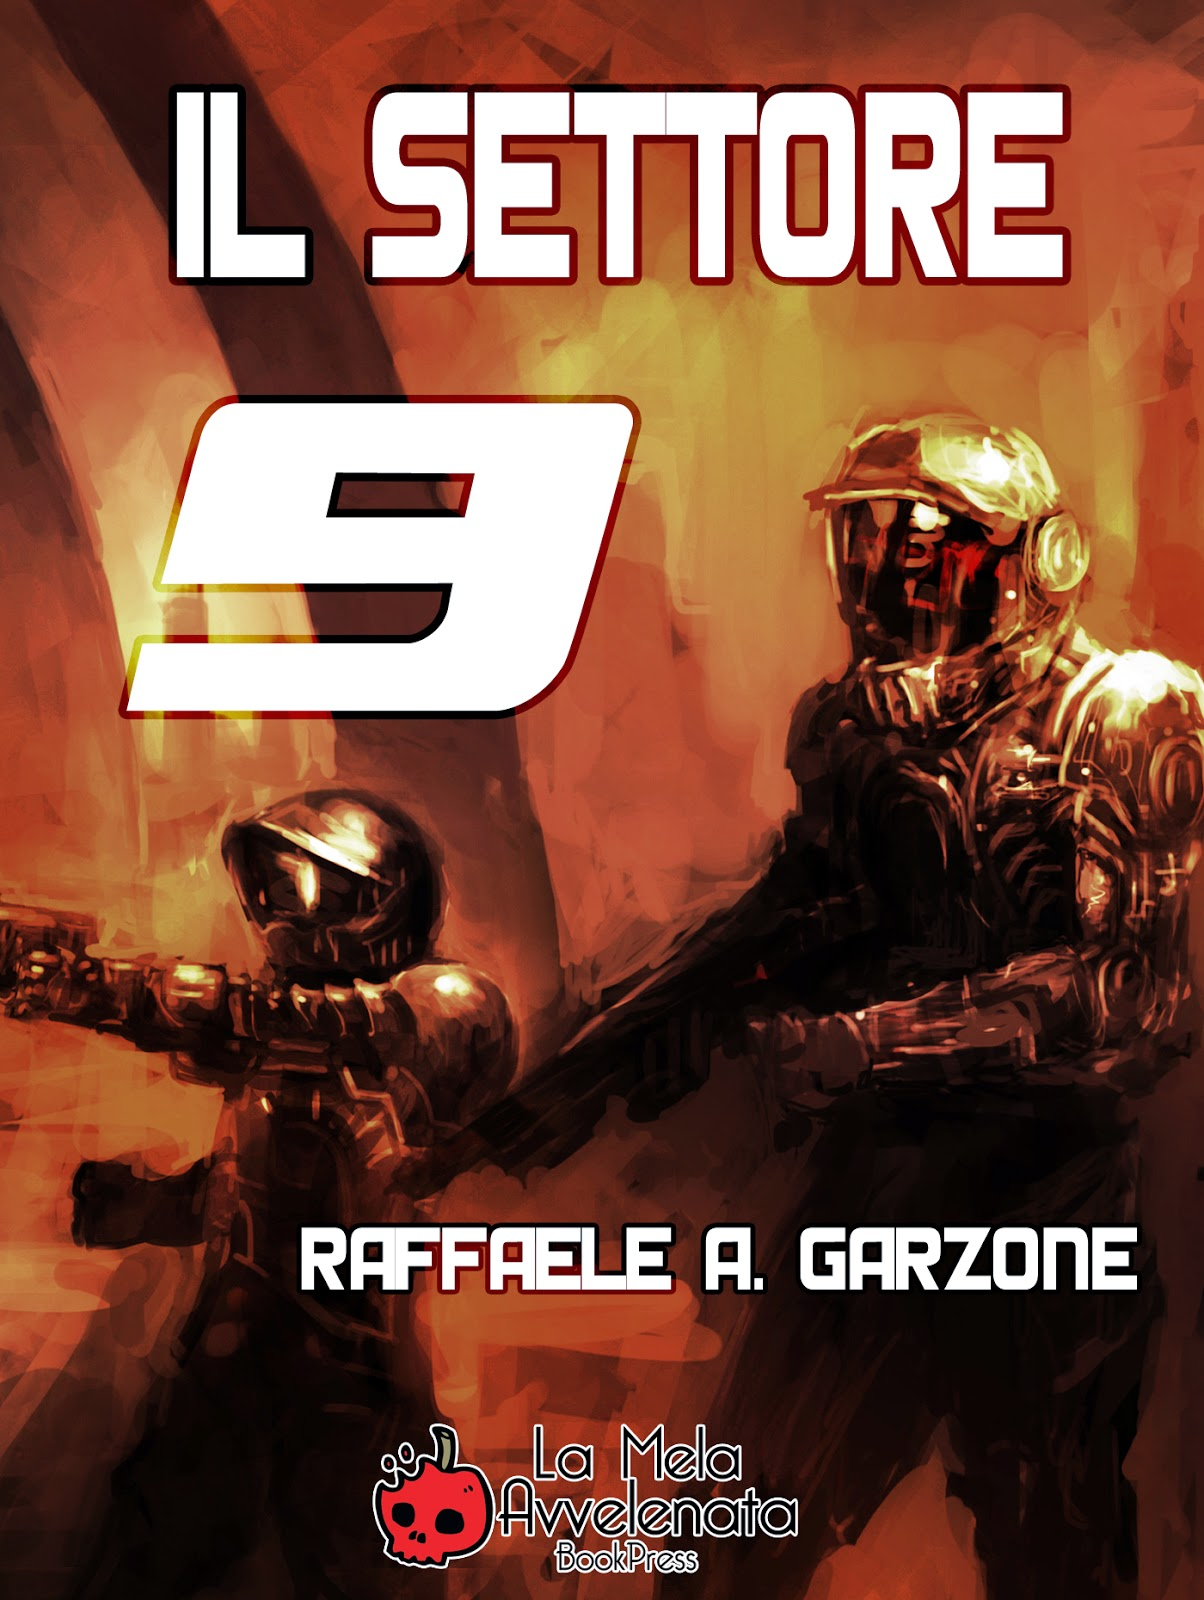 http://www.amazon.it/Il-settore-9-Raffaele-Garzone-ebook/dp/B00G1O9ZDW/ref=sr_1_1?ie=UTF8&qid=1405025237&sr=8-1&keywords=il+settore+9